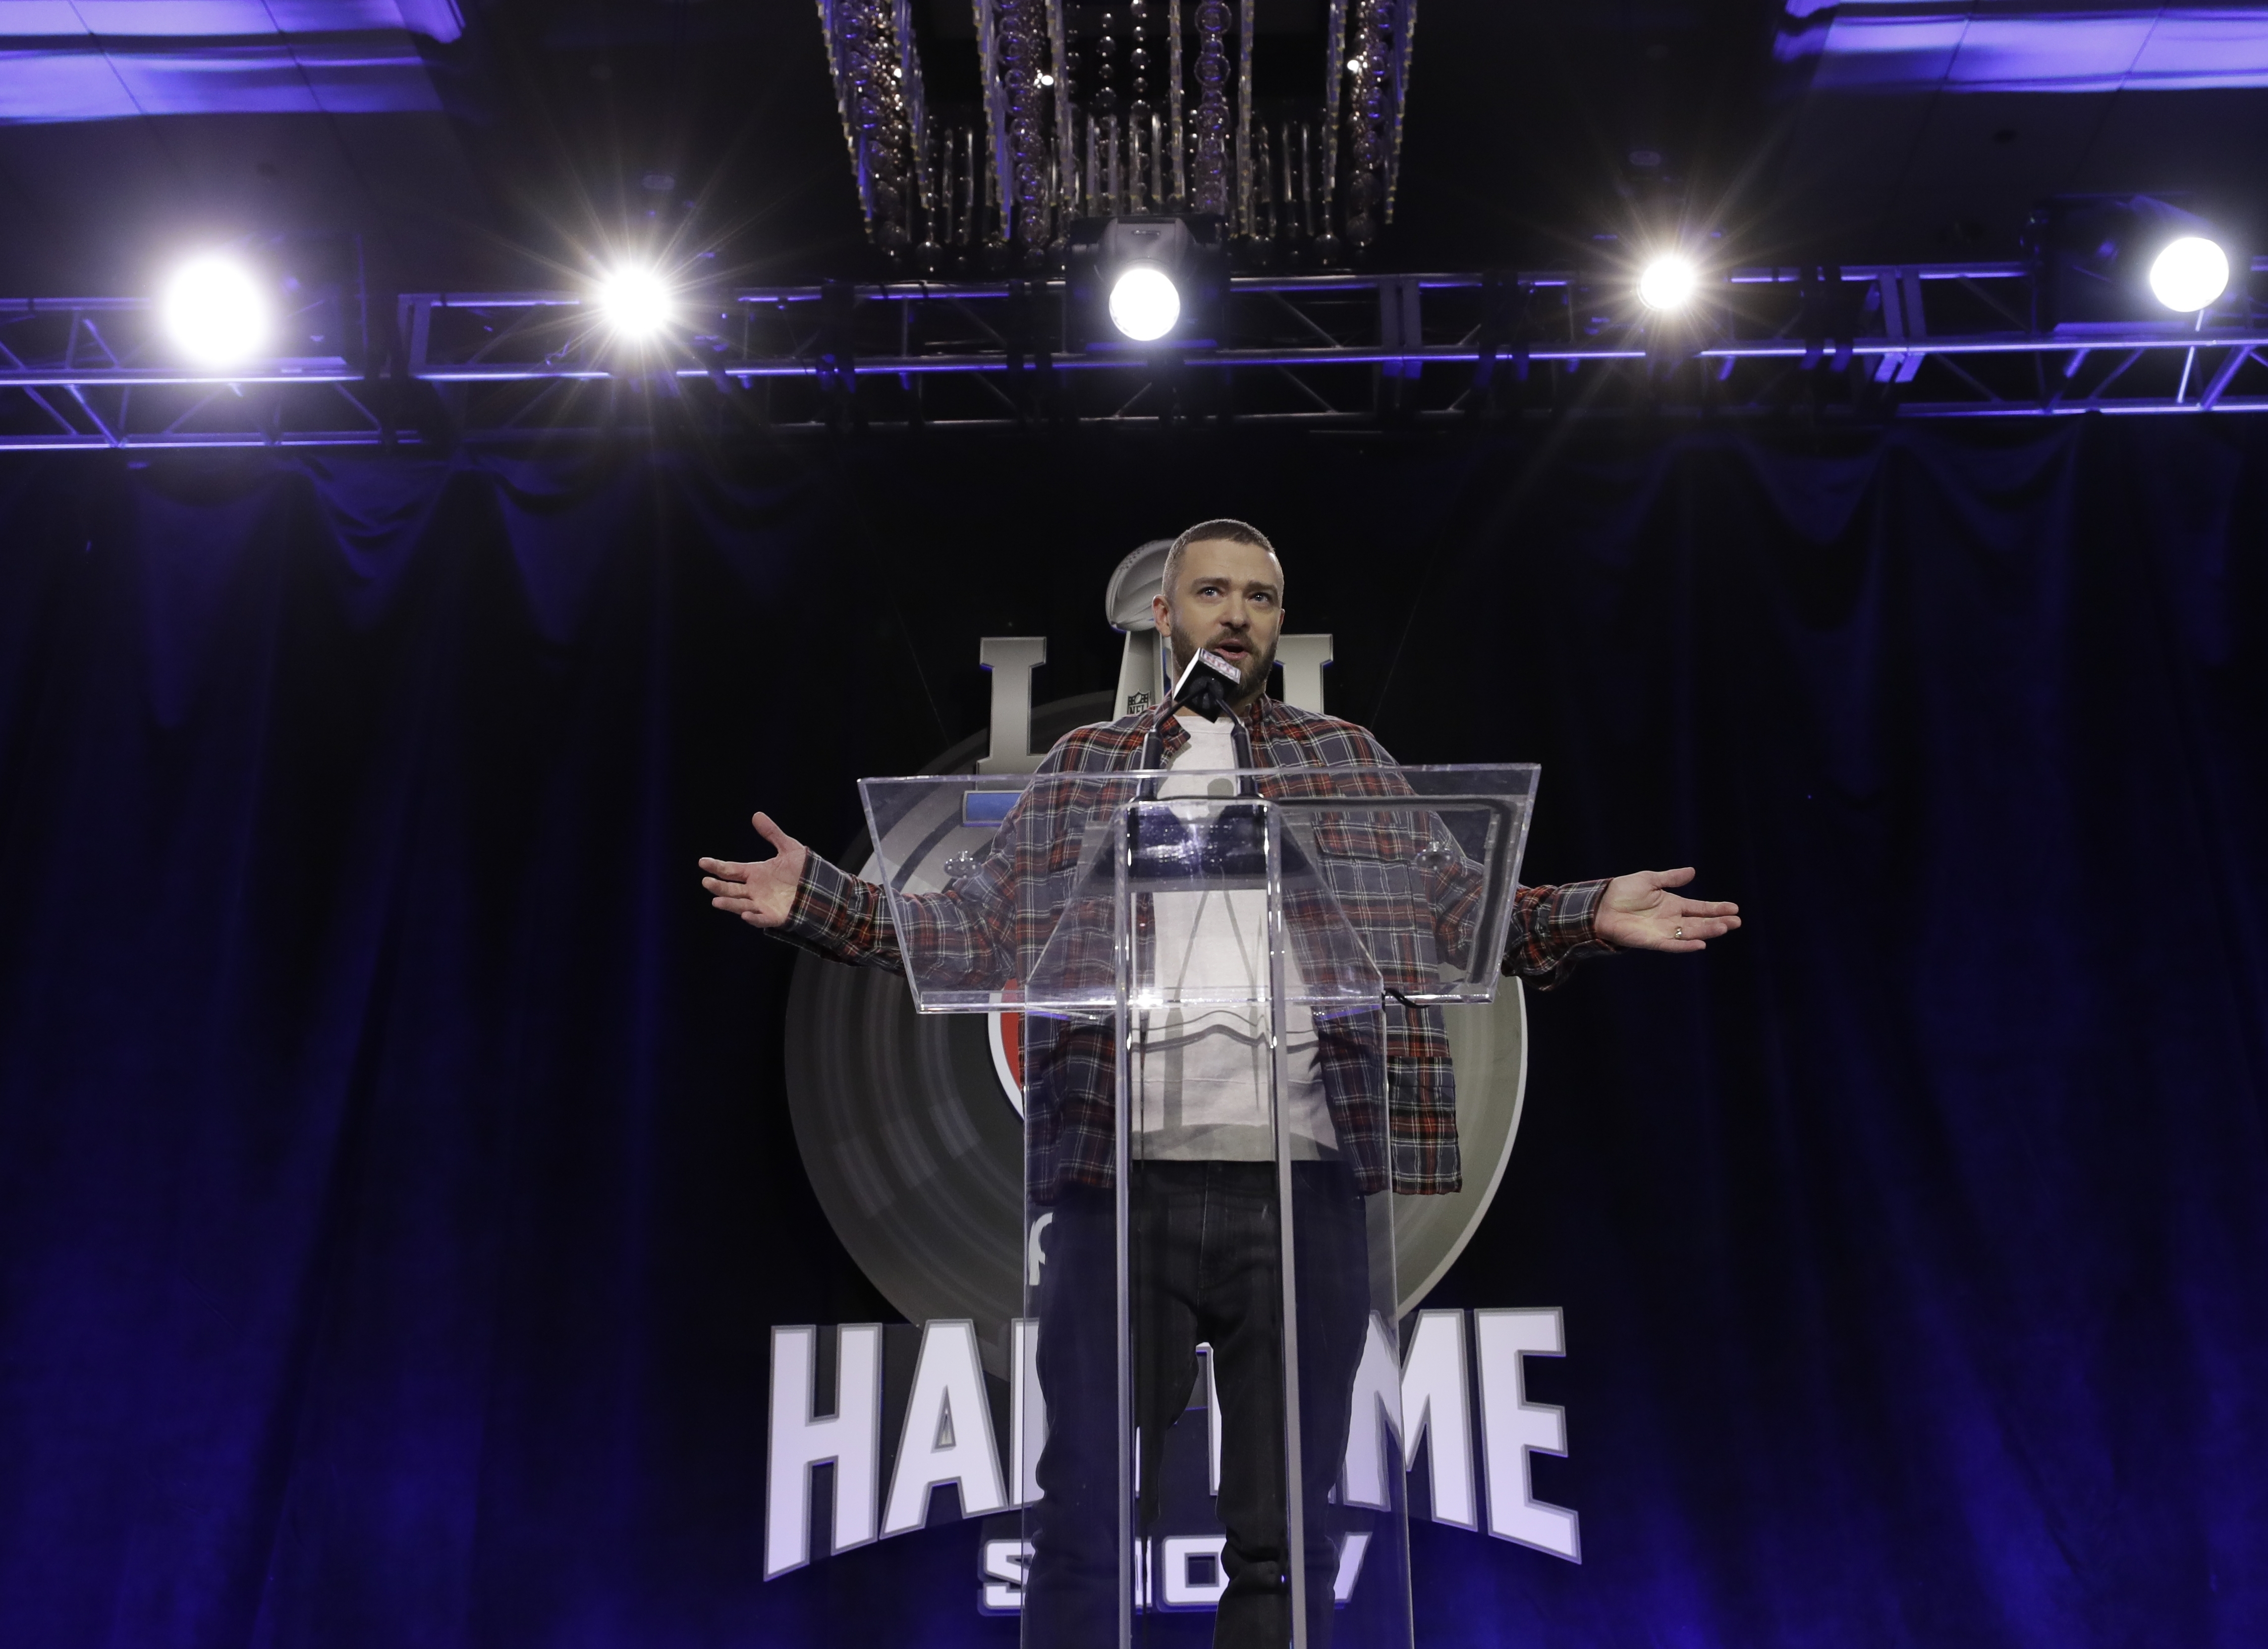 Justin Timberlake answers questions during a news conference for the Super Bowl 52 football game halftime show Thursday, Feb. 1, 2018, in Minneapolis. (AP Photo/Matt Slocum)